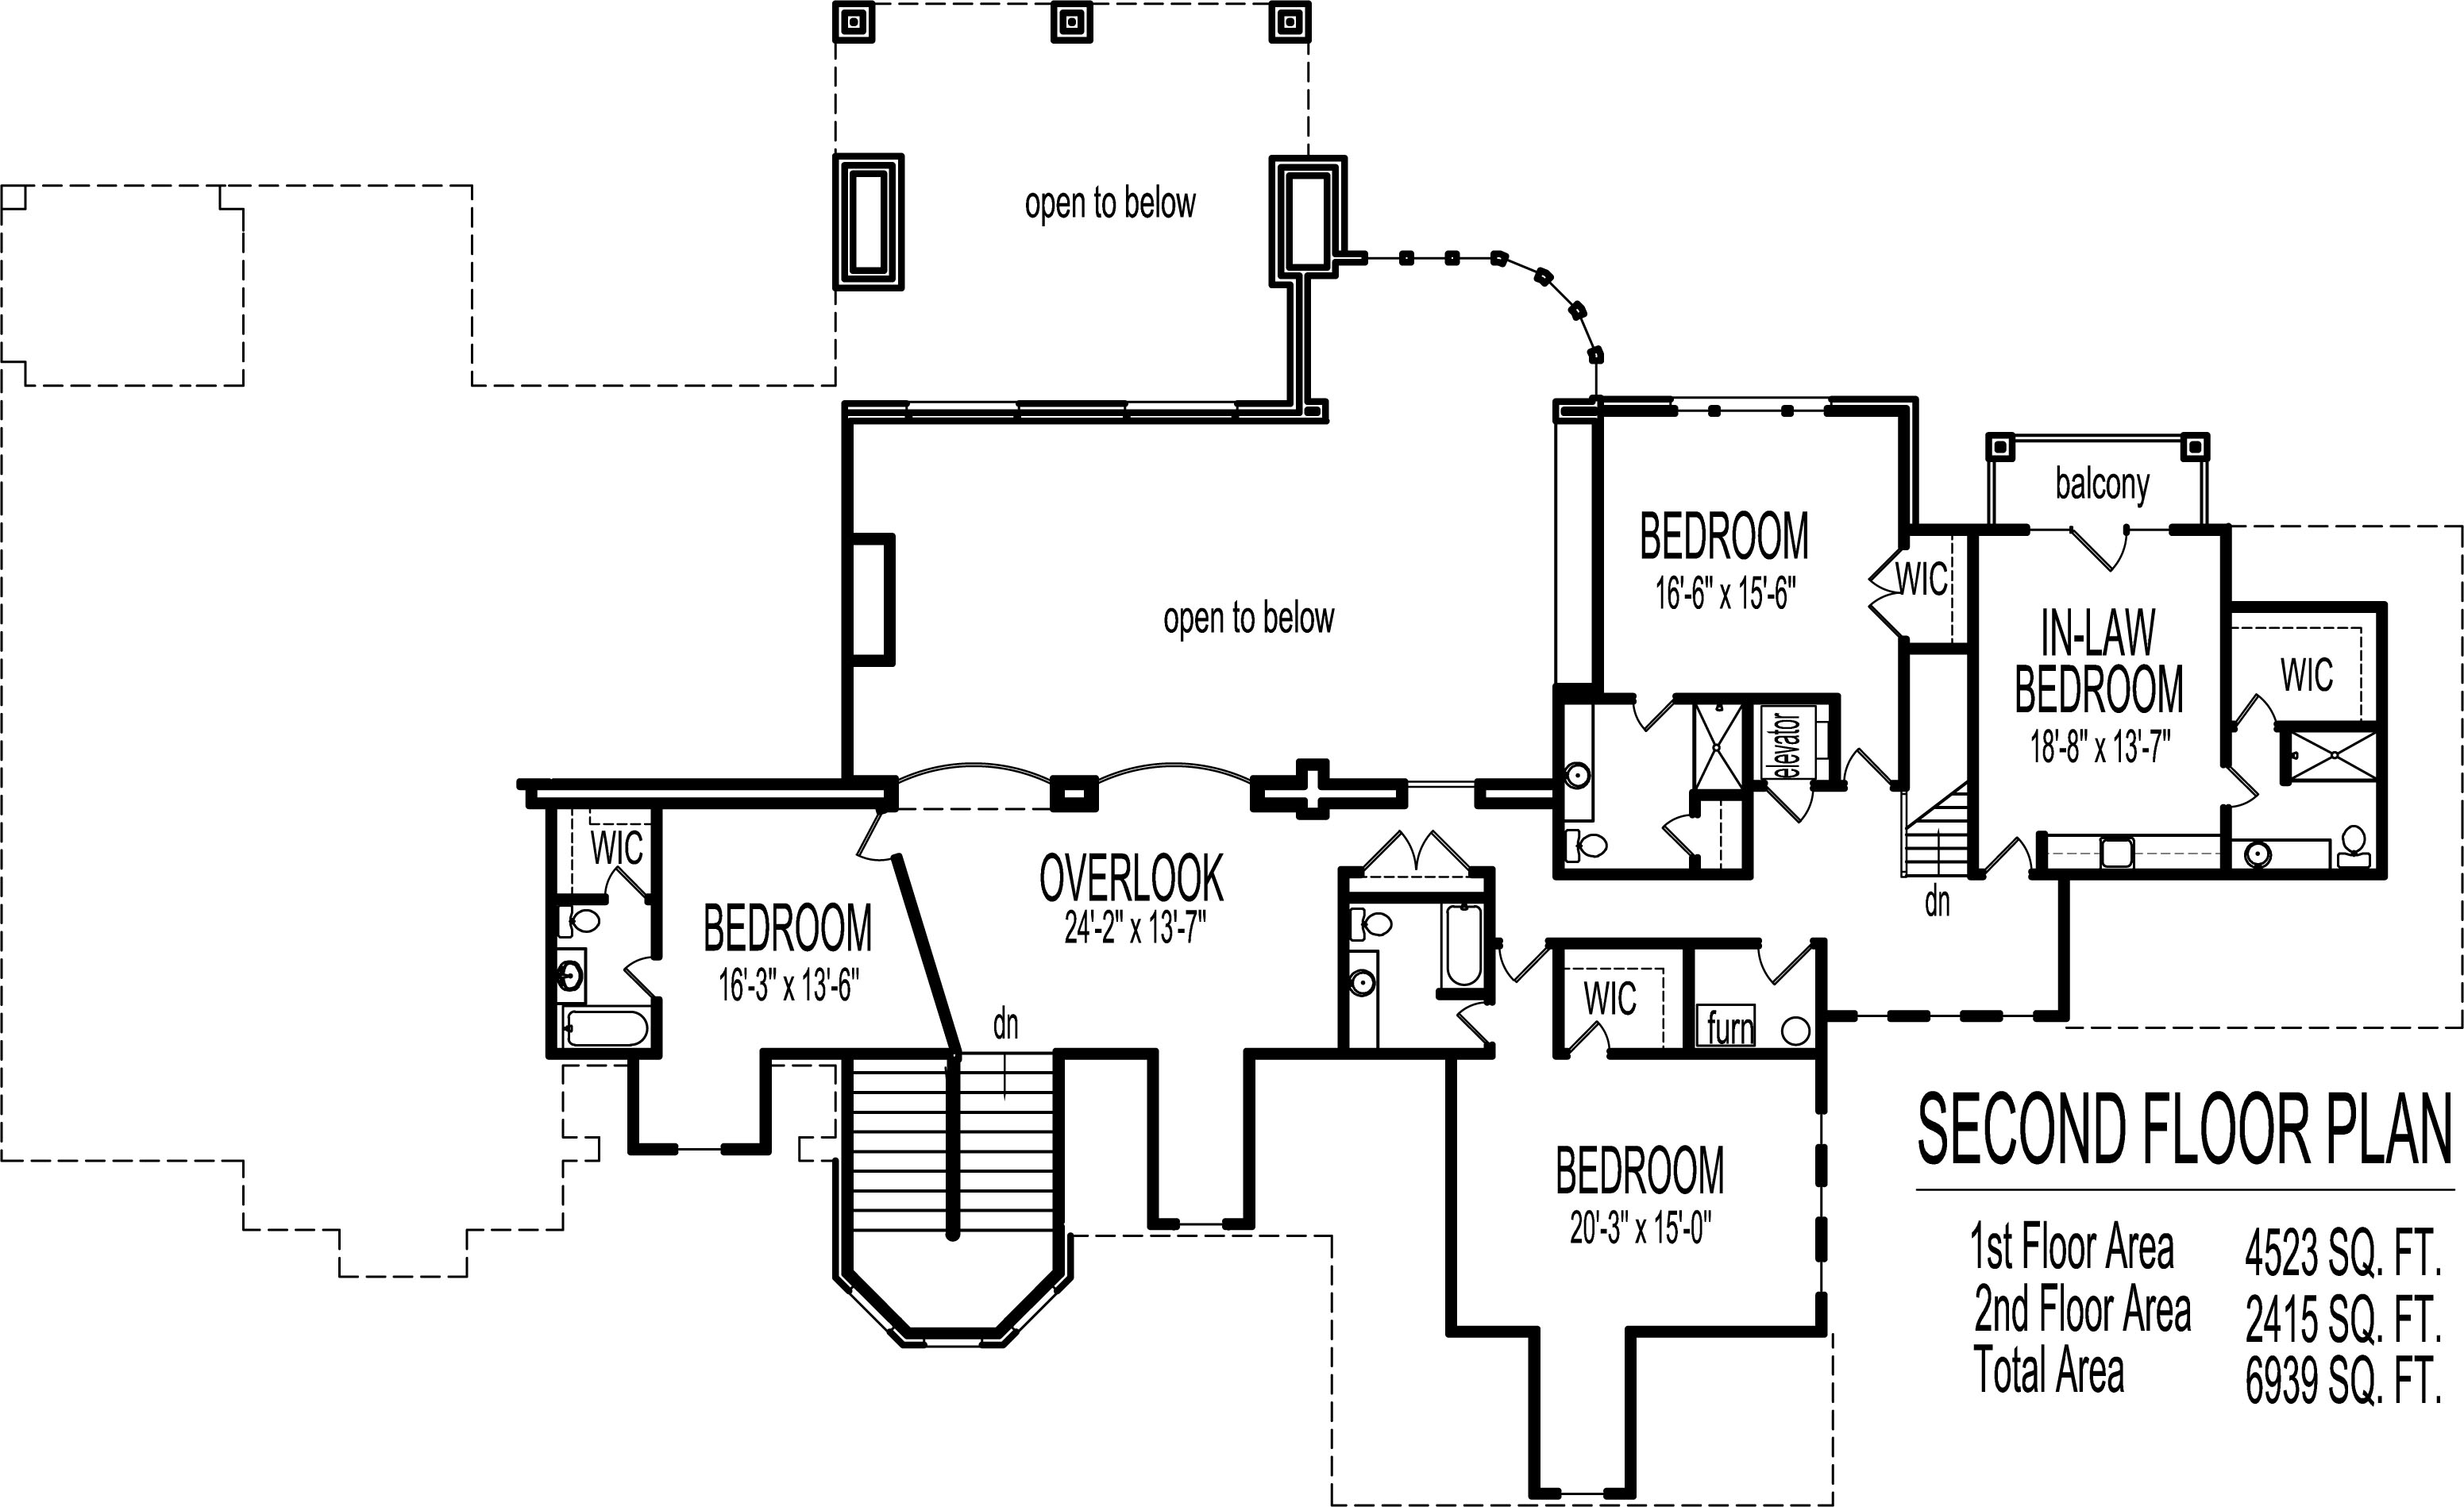 Small Bathroom Plan besides Home Plans French Country 6 Bedroom 10000 SF together with Affordable Modern House Plan Ch61 also House Plans 4 Bedroom 2 Story 5200 Sq Ft Stone furthermore Interior 3d Floor Plan. on 3 bedroom blueprints